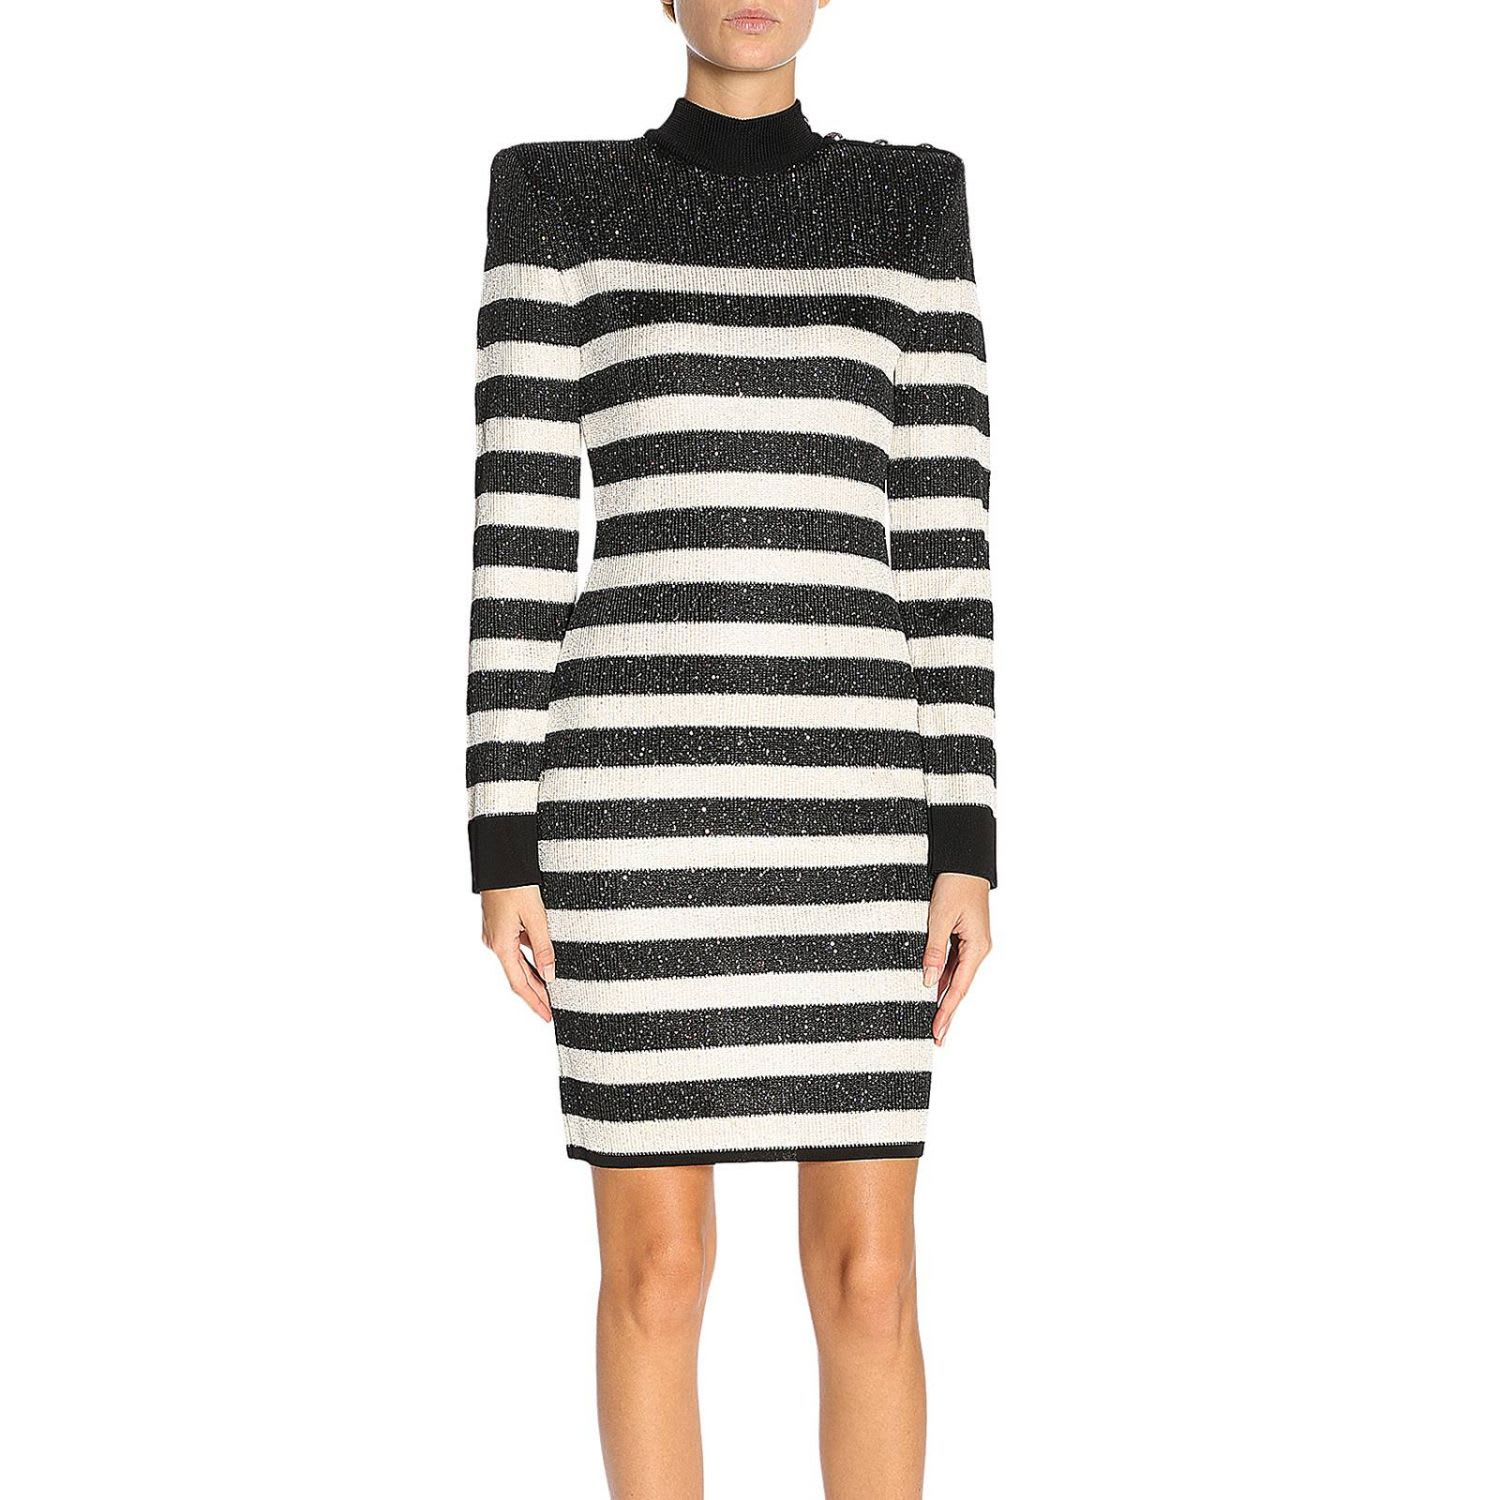 Buy Balmain Dress Dress Women Balmain online, shop Balmain with free shipping